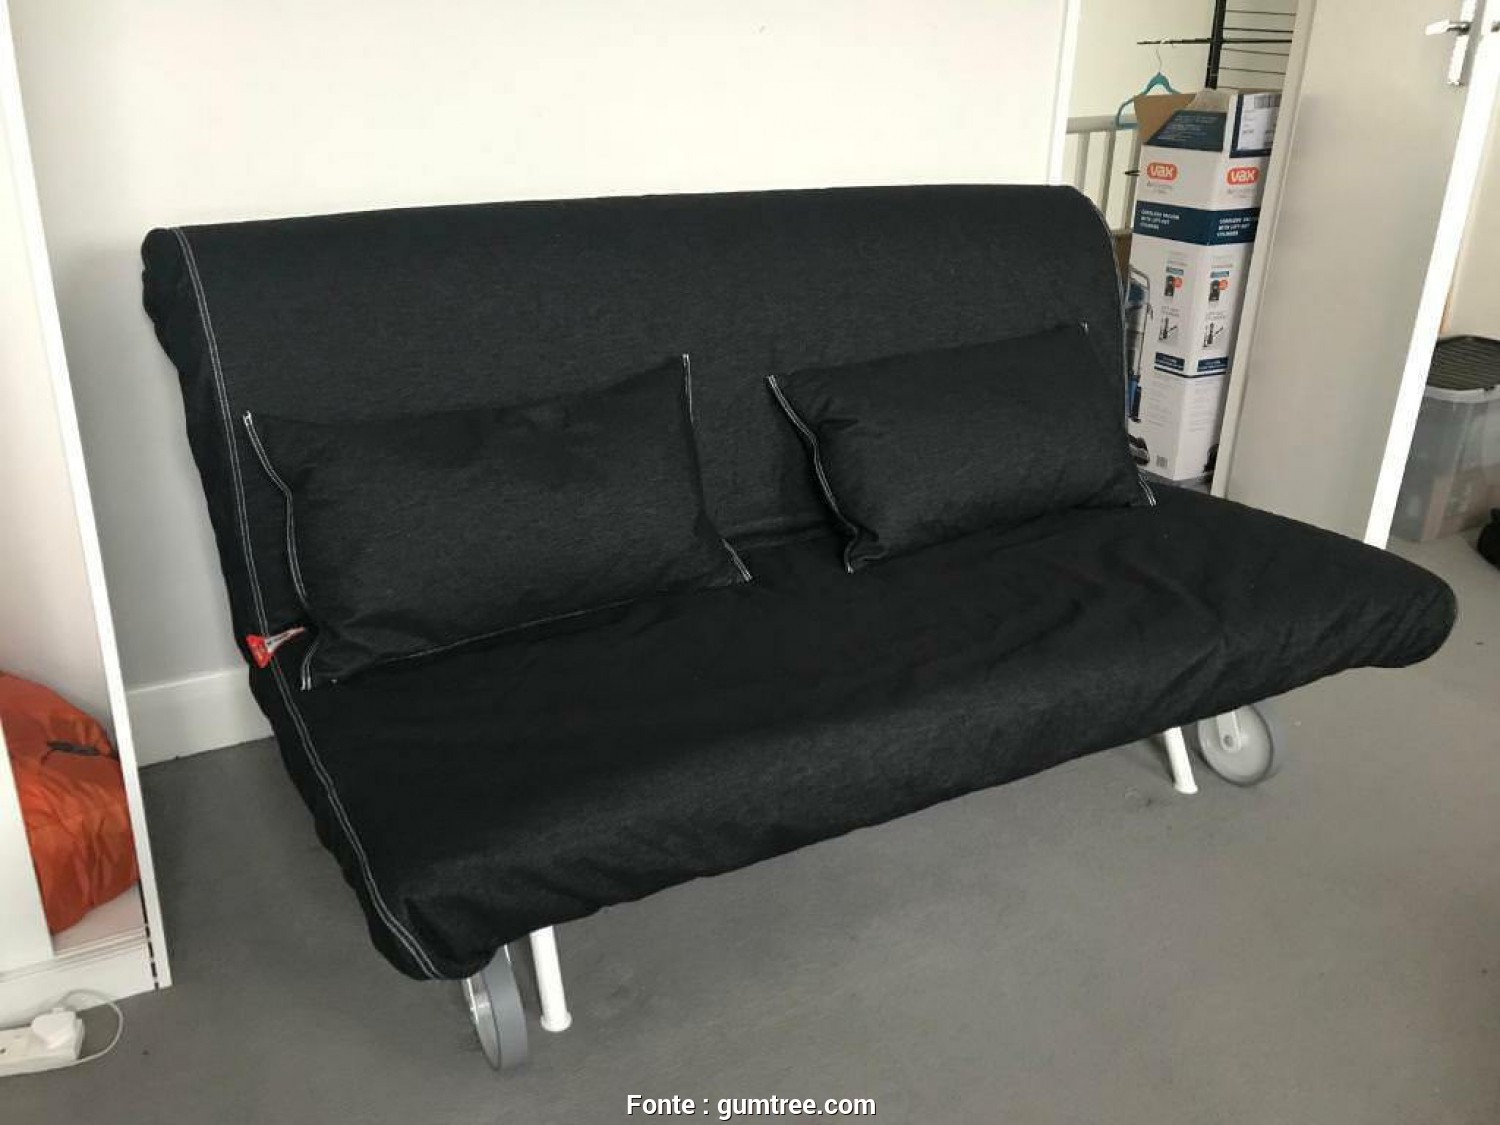 Ikea Lycksele Futon Instructions, Deale IKEA PS Sofa Bed, In Hammersmith, London, Gumtree